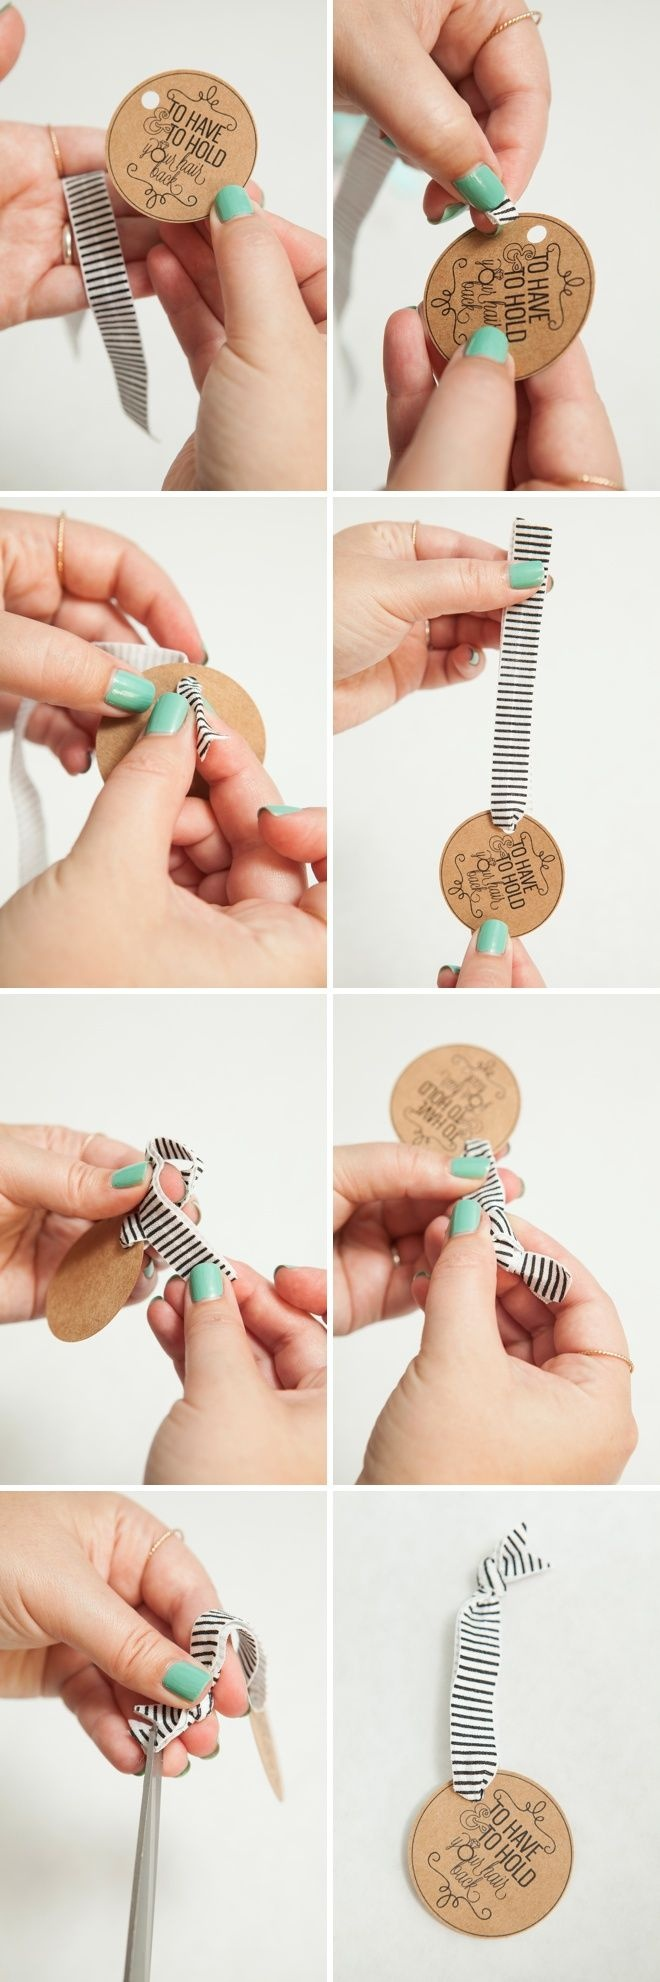 Learn How To Make Elastic Hair Tie Favors! | Creative Wedding - To Have And To Hold Your Hair Back Free Printable